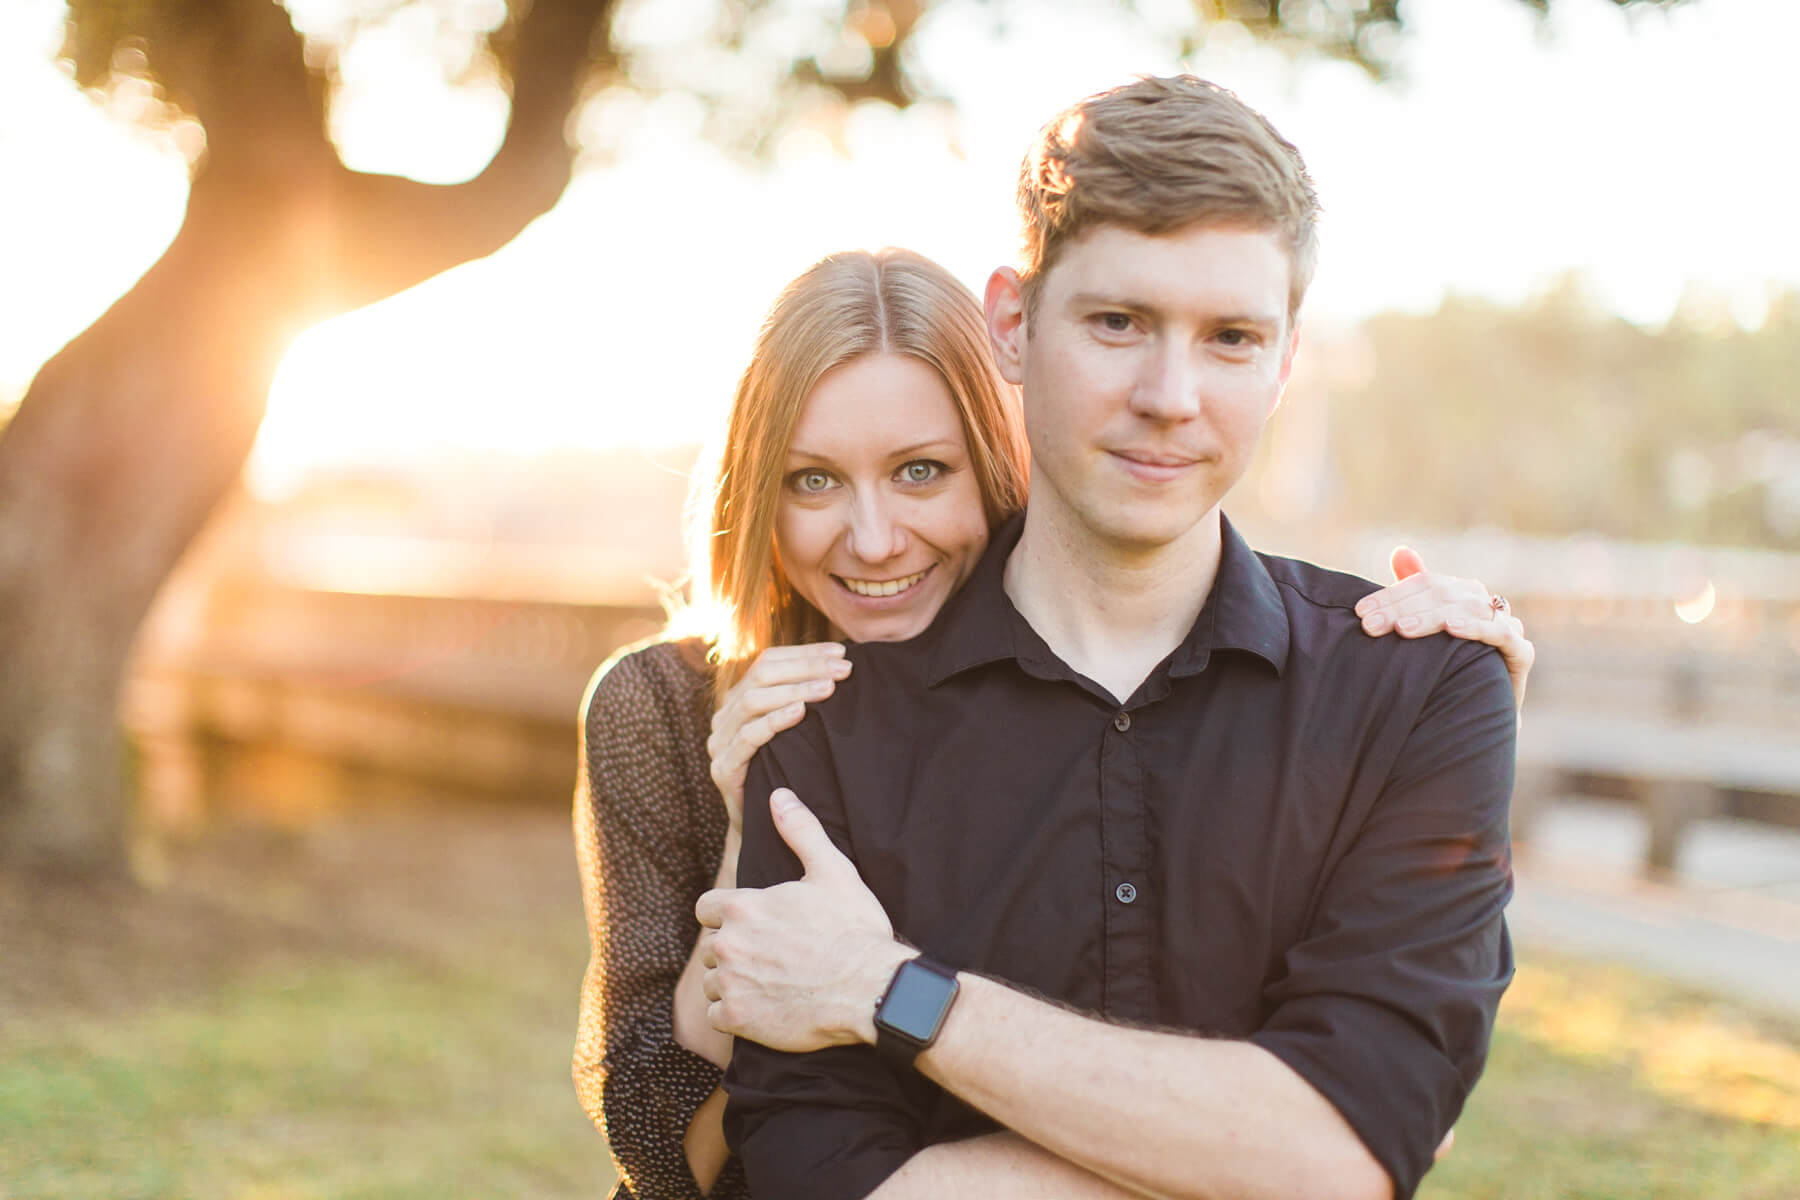 the-light-and-glass-wedding-engagement-photography-9-TLG-02.jpg